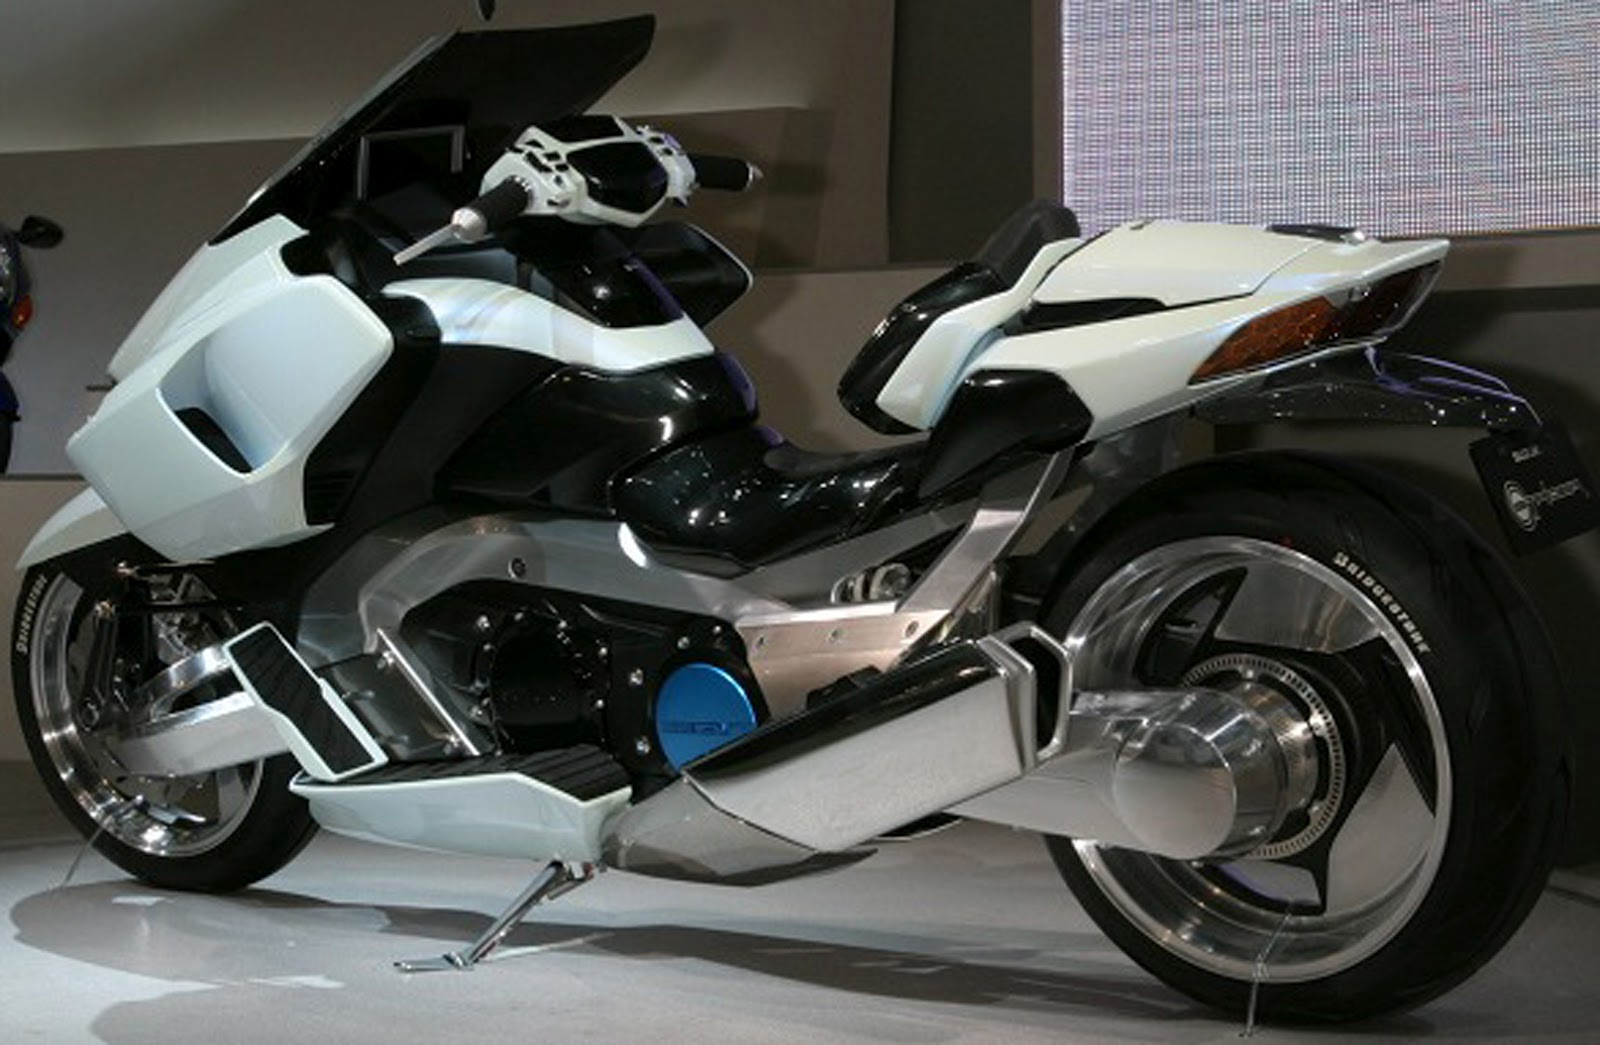 DSNG'S SCI FI MEGAVERSE: FUTURISTIC MOTORCYCLES